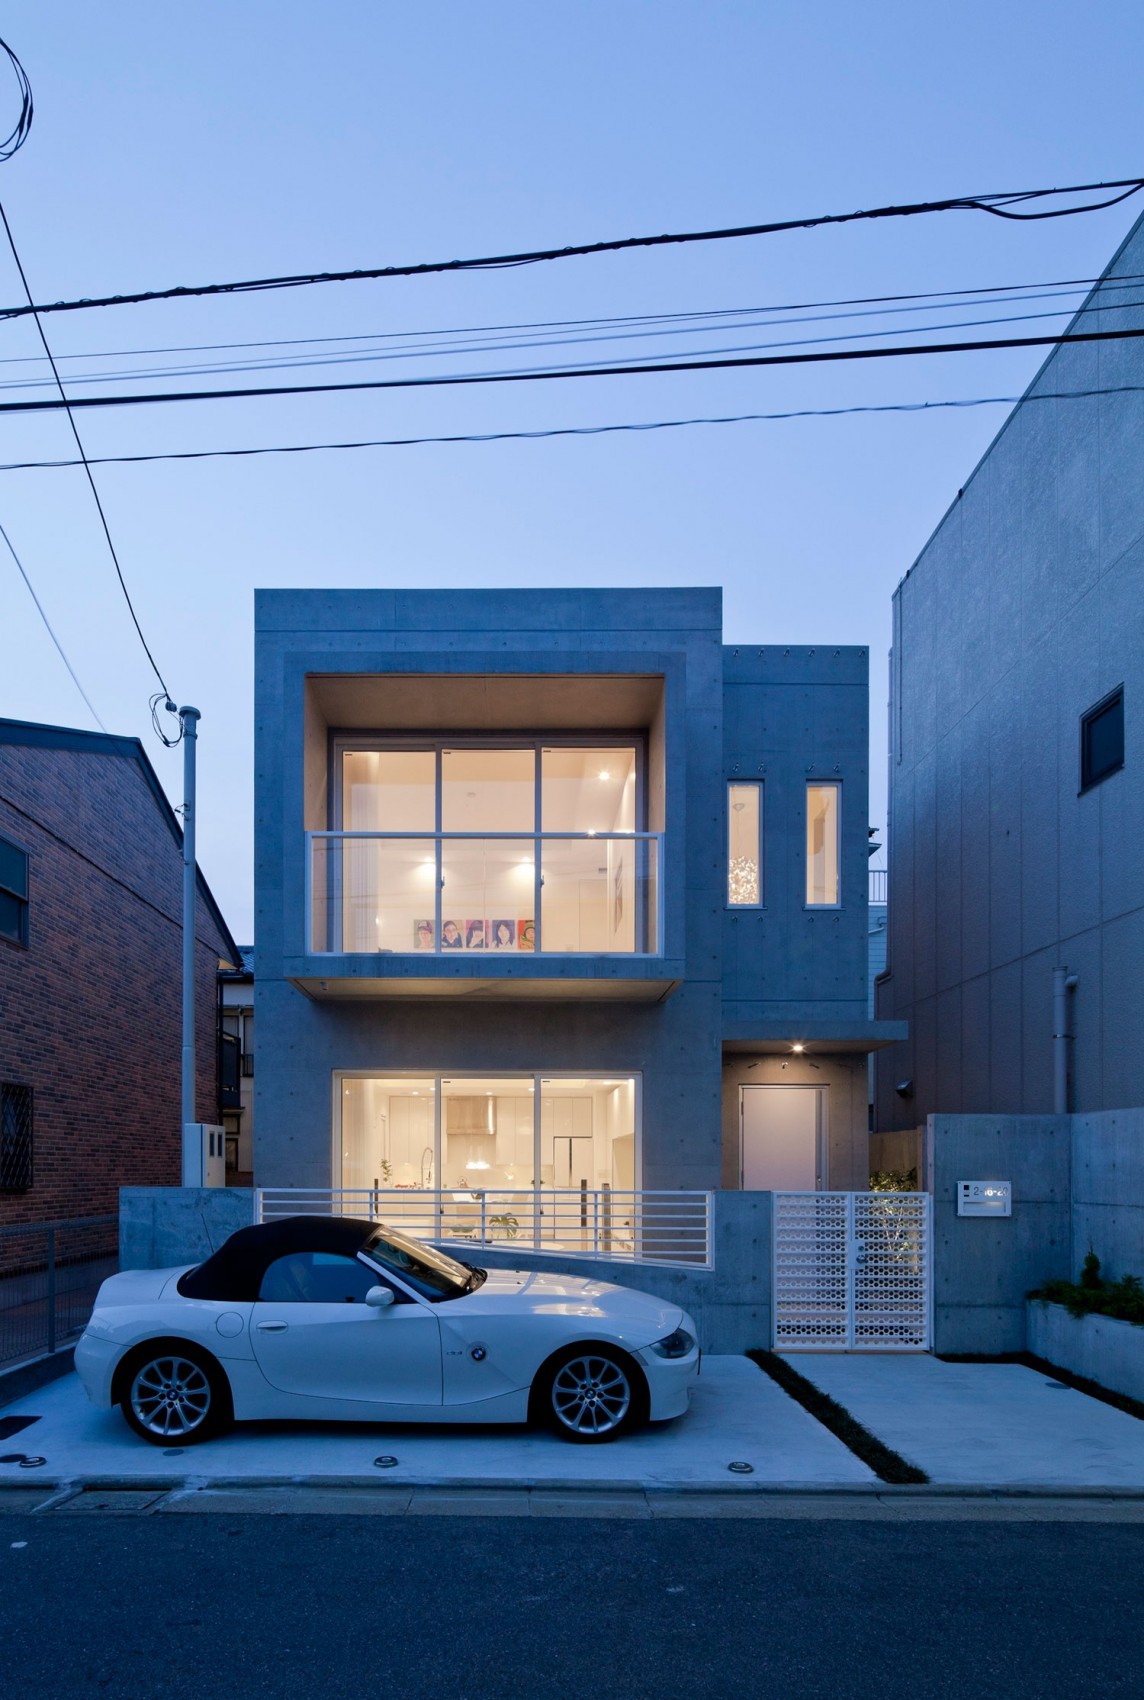 Concrete house in tokyo collect this idea night view